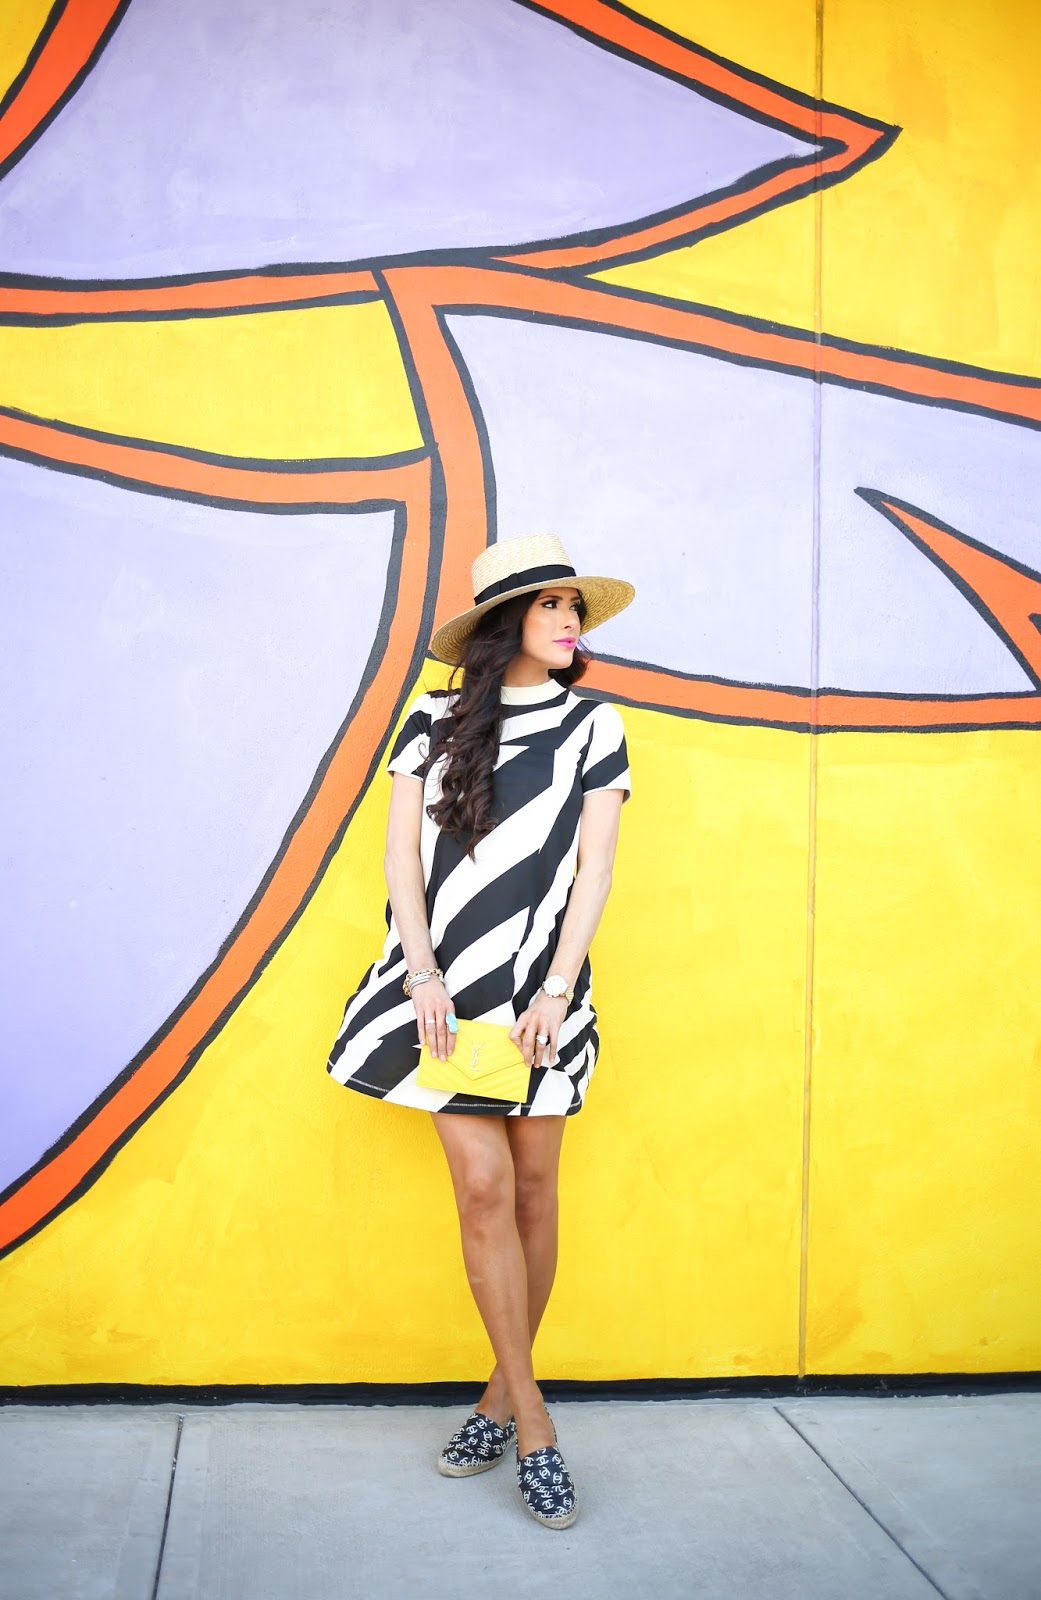 cheap monday striped dress, yellow YSL wallet on a chain, striped swing dress, nordstrom striped wing dress, chanel espadrilles black and with with CCs, michele gold serein watch 18mm, brixton straw hat, emily gemma, the sweetest thing blog, spring fashion pinterest, summer fashion pinterest, summer outfit ideas pinterest, deepa gurnani earrings, chanel espadrilles, tulsa fashion blogger, happy go lucky lipstick